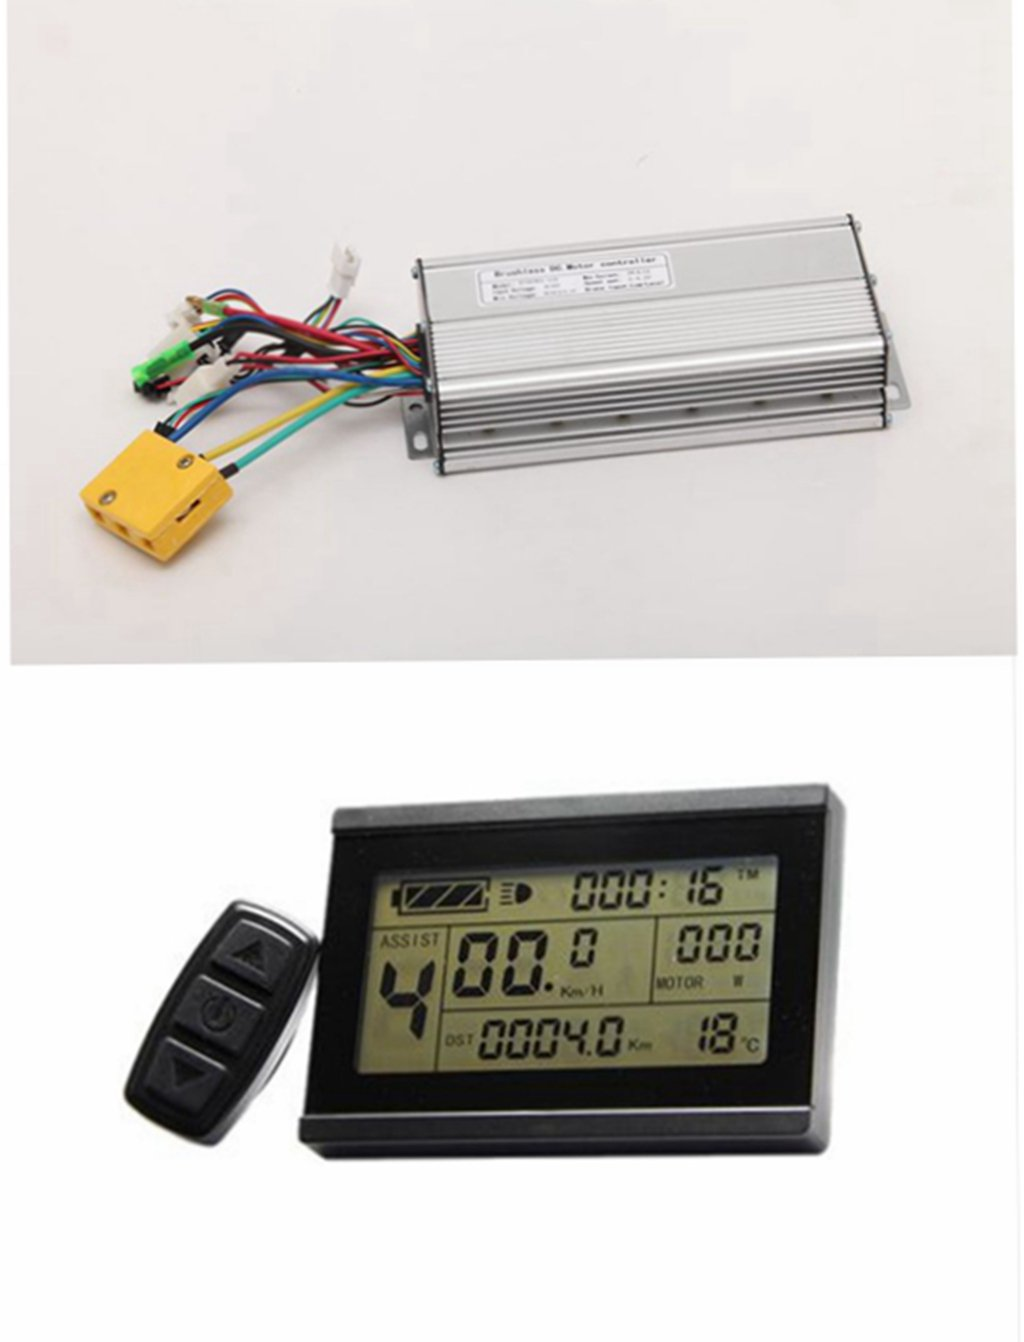 61gjz kZoHL - NBPOWER 48V 1500W 35A Brushless DC Motor Controller Ebike Controller +KT-LCD3 Display One Set,used f